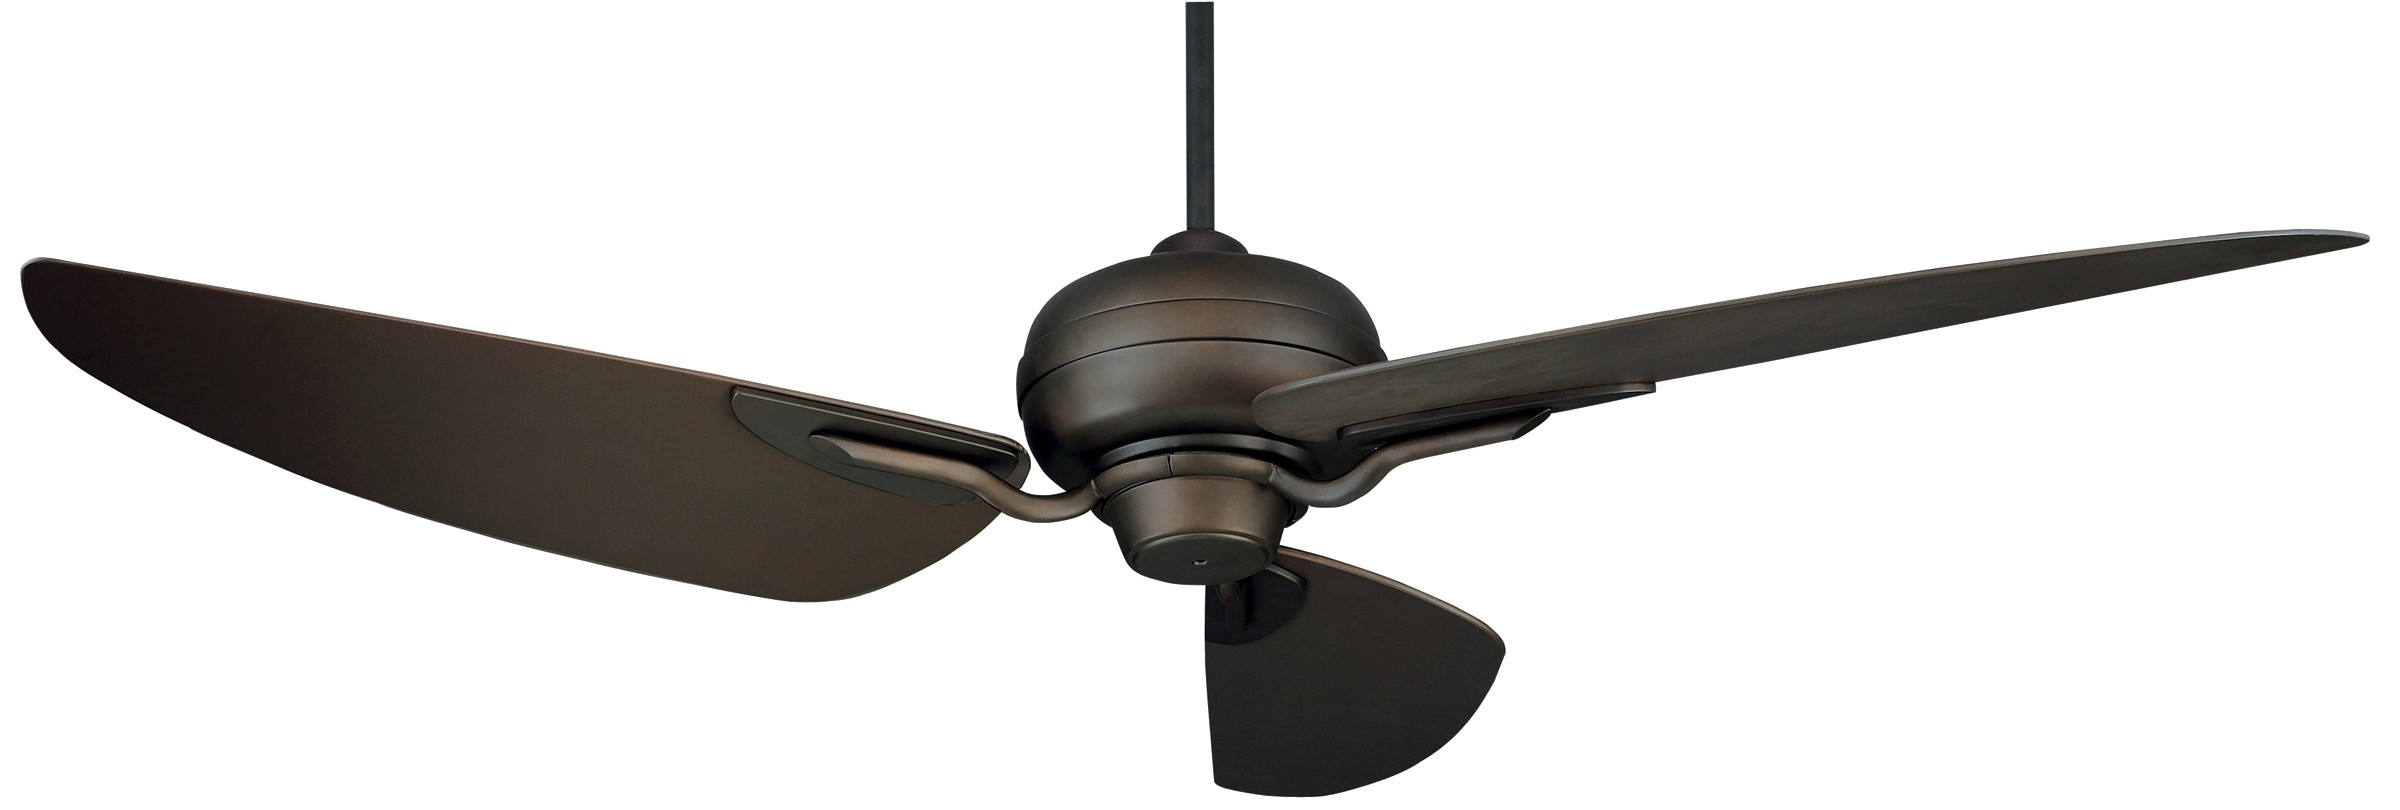 Preferred Bronze Outdoor Ceiling Fans Throughout 22 Exterior Ceiling Fans, Industrial Style Ceiling Fanrustic (View 15 of 20)